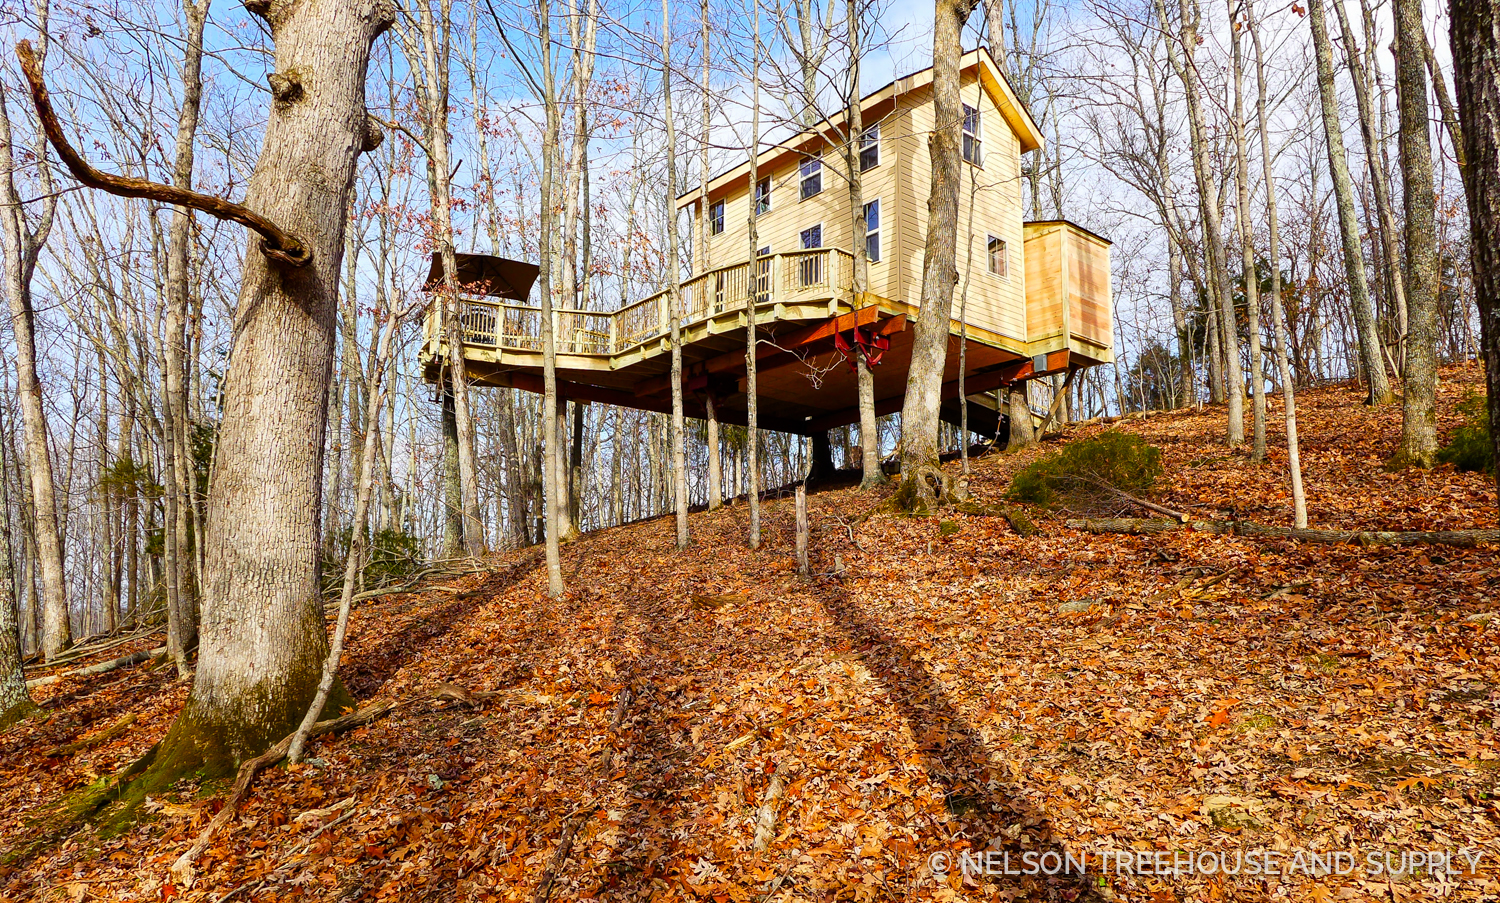 Nelson Treehouse Kentucky Climber's Cottage